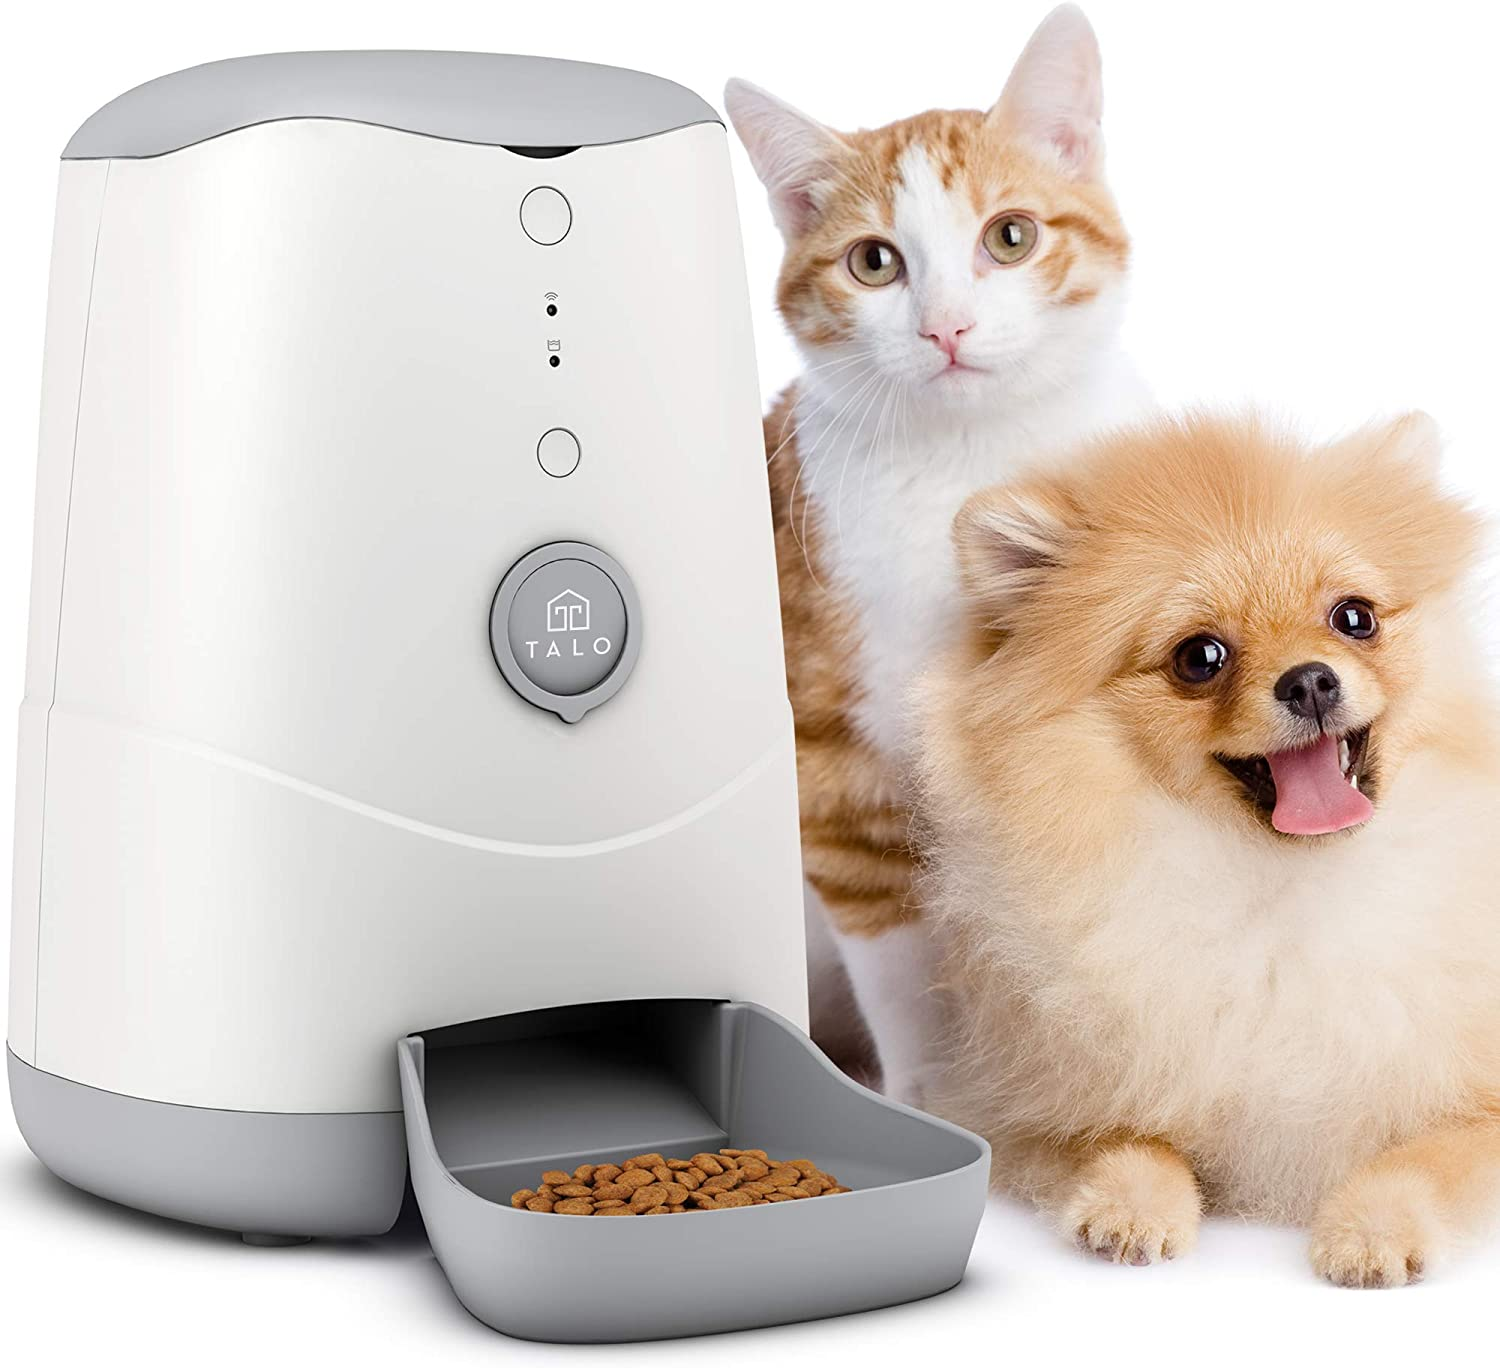 Talo Automatic Wi-Fi Pet Feeder 3.7L - Smart Cat Feeder - Dog Feeder with App Control - Food Dispenser with Timer - 130oz – White